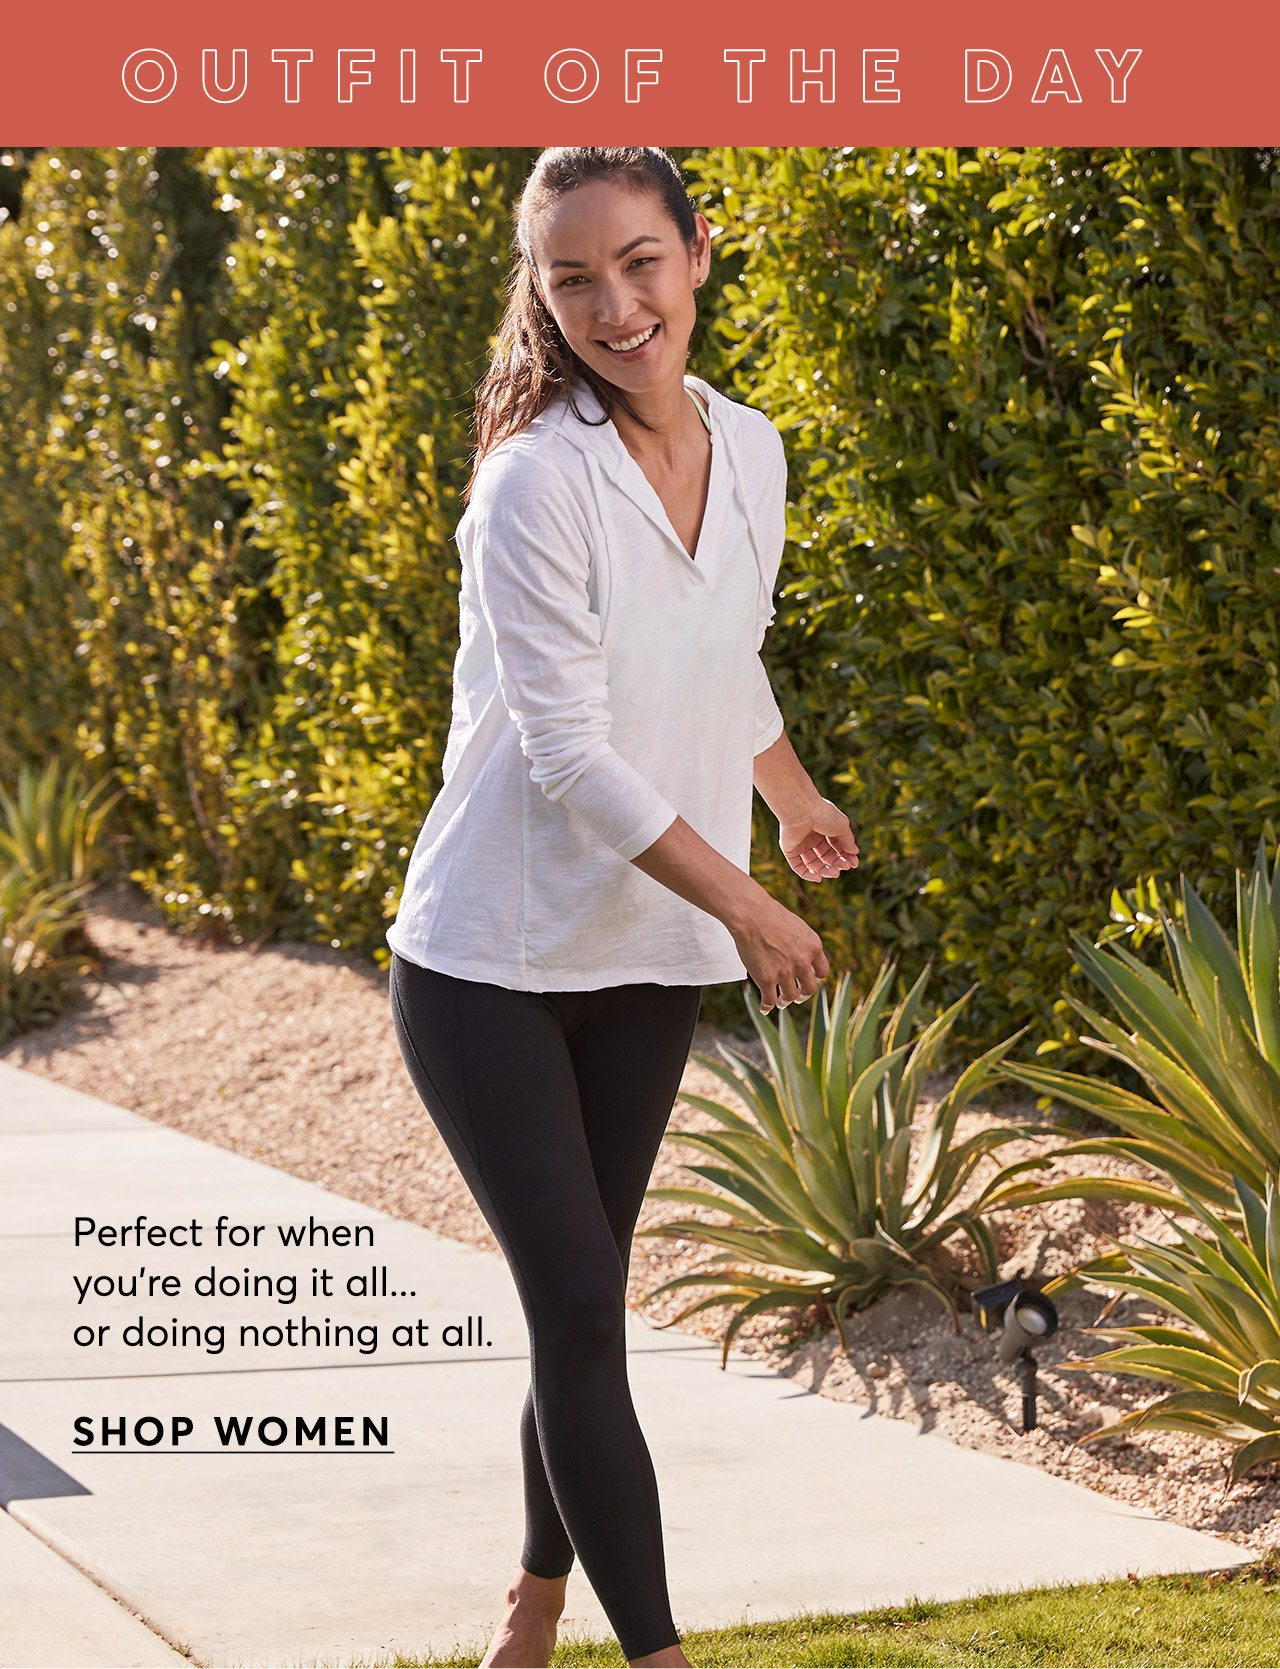 OOTD: Perfect for when you're doing it all... or doing nothing at all. Shop Women's